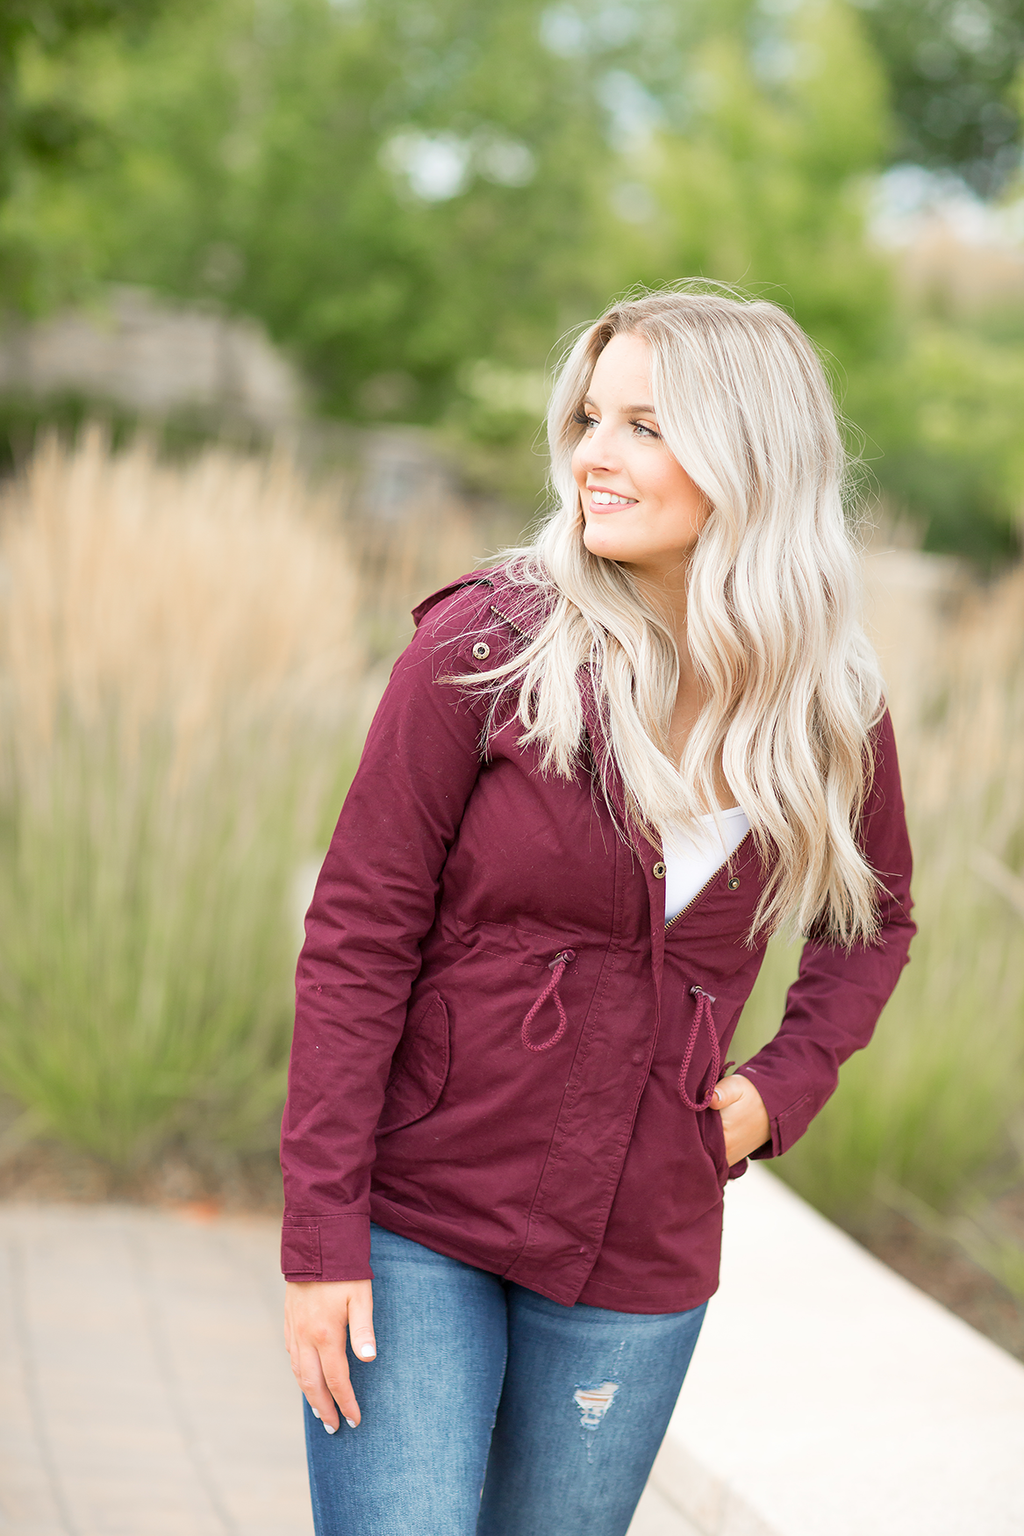 Life's Wonder Cargo Jacket in Burgundy